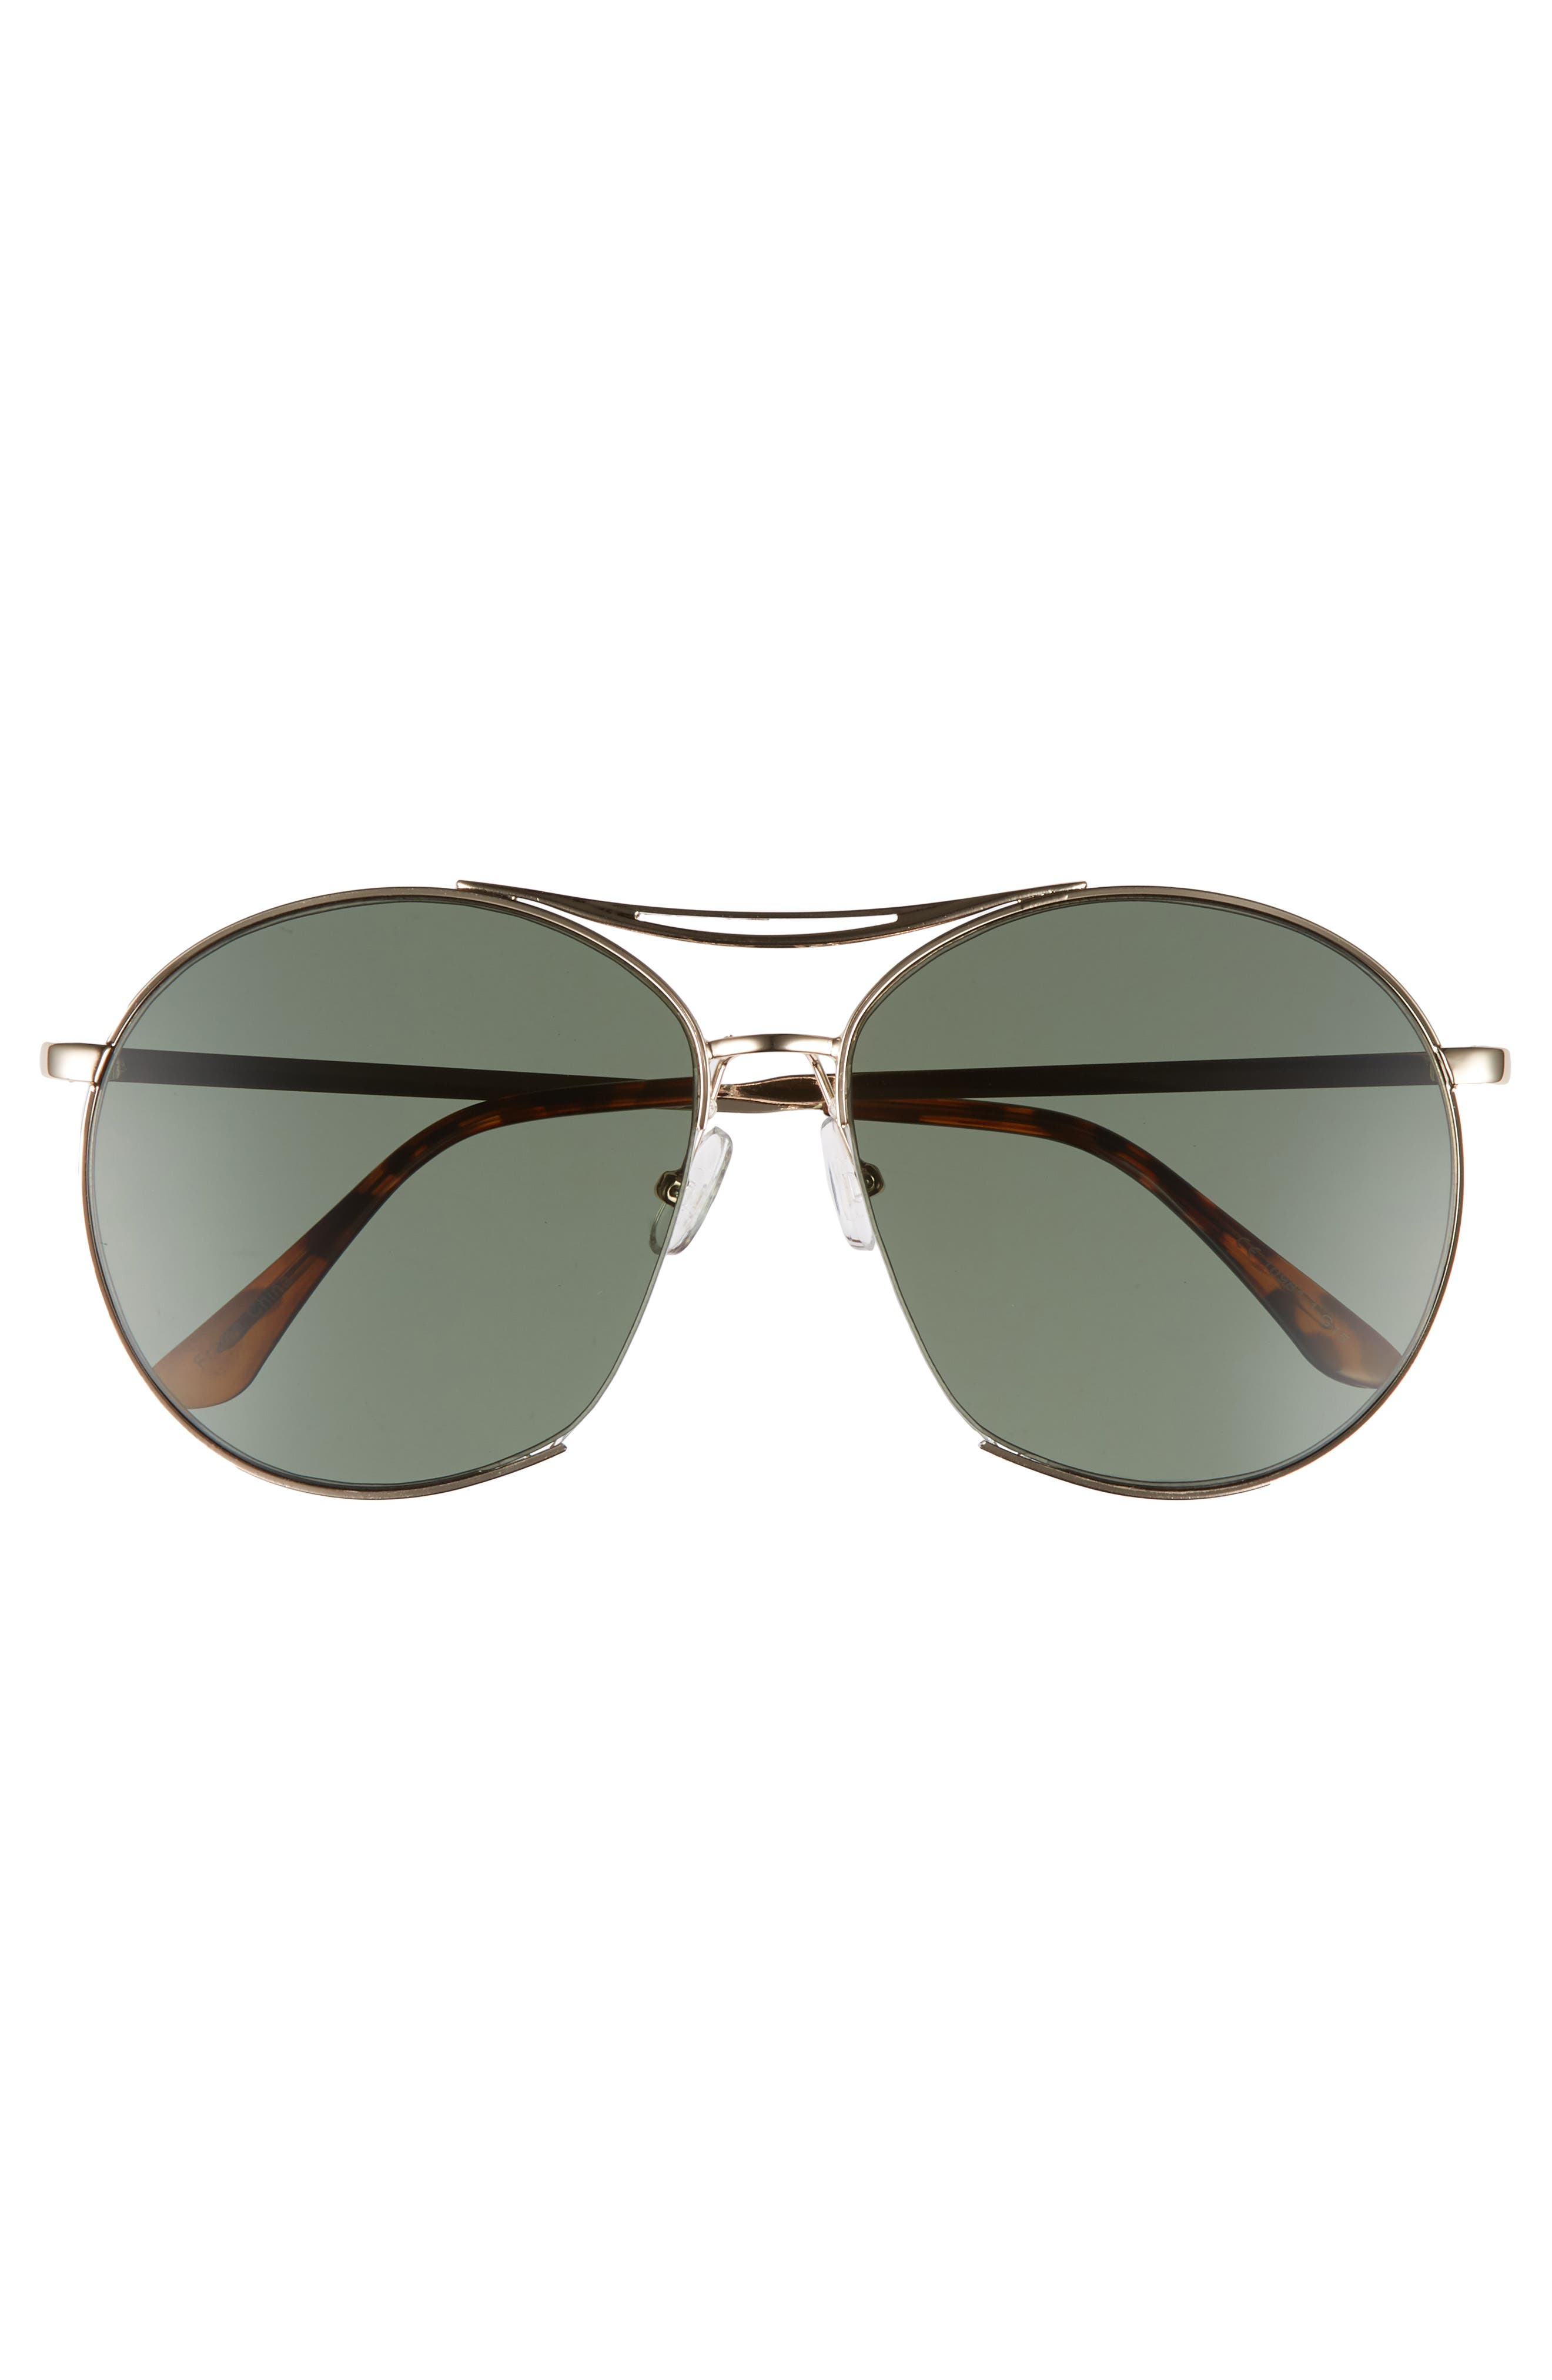 60mm Round Aviator Sunglasses,                             Alternate thumbnail 3, color,                             Gold